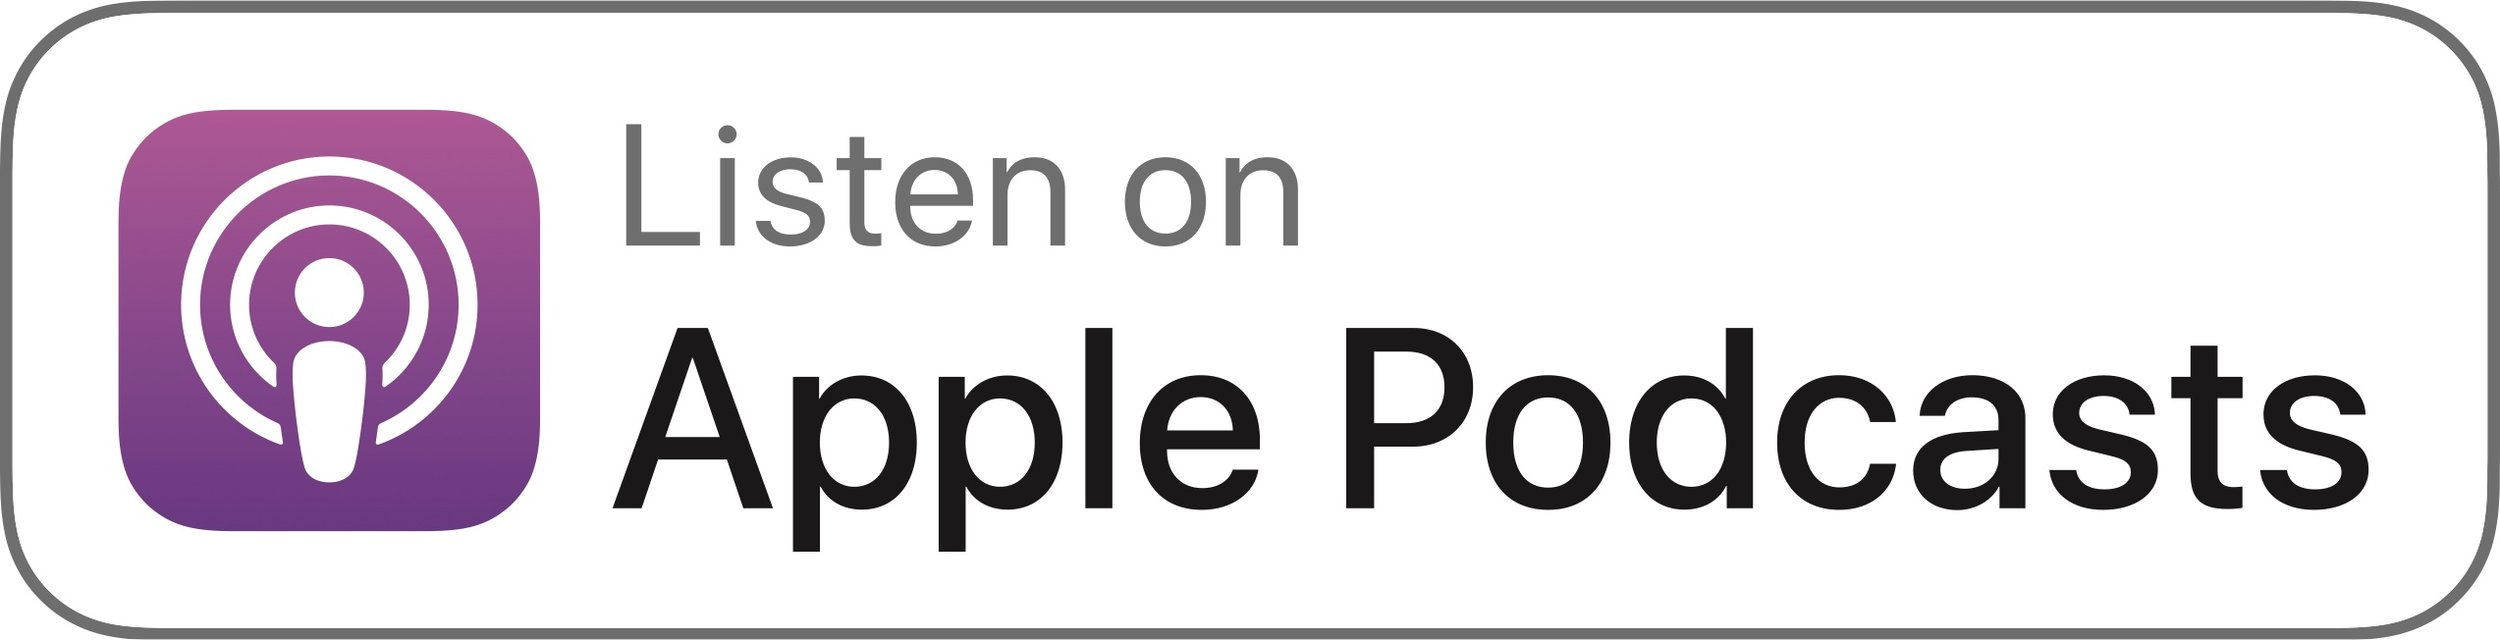 apple podcast badge.jpg